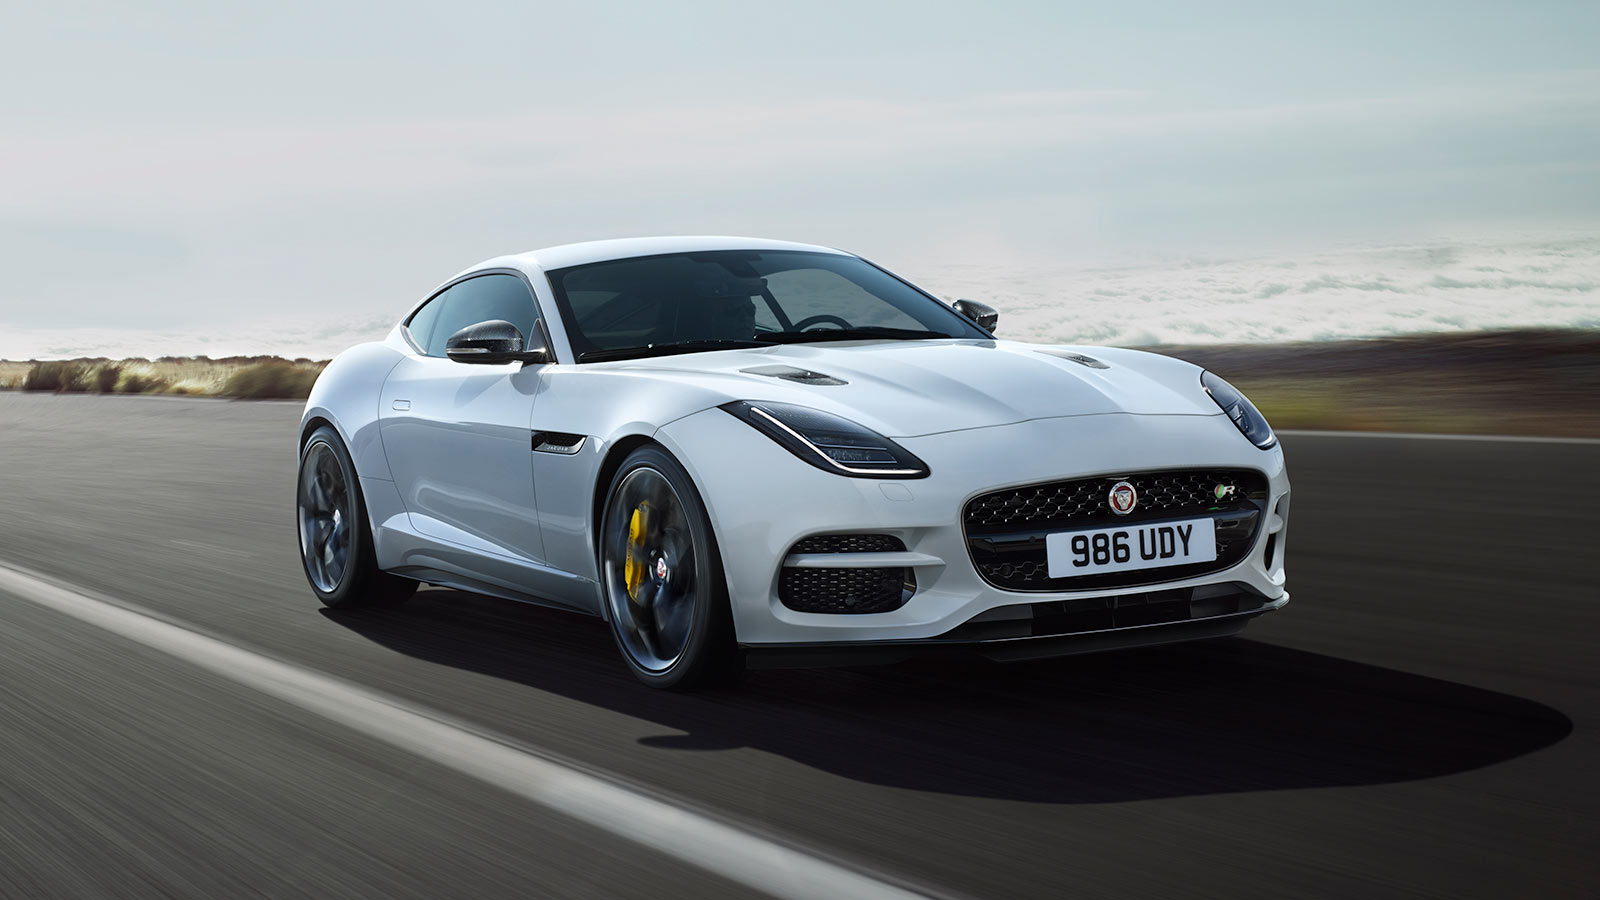 Jaguar F-TYPE 3.0 (380) S/C V6 Chequered Flag AWD SPECIAL EDITIONS image 1